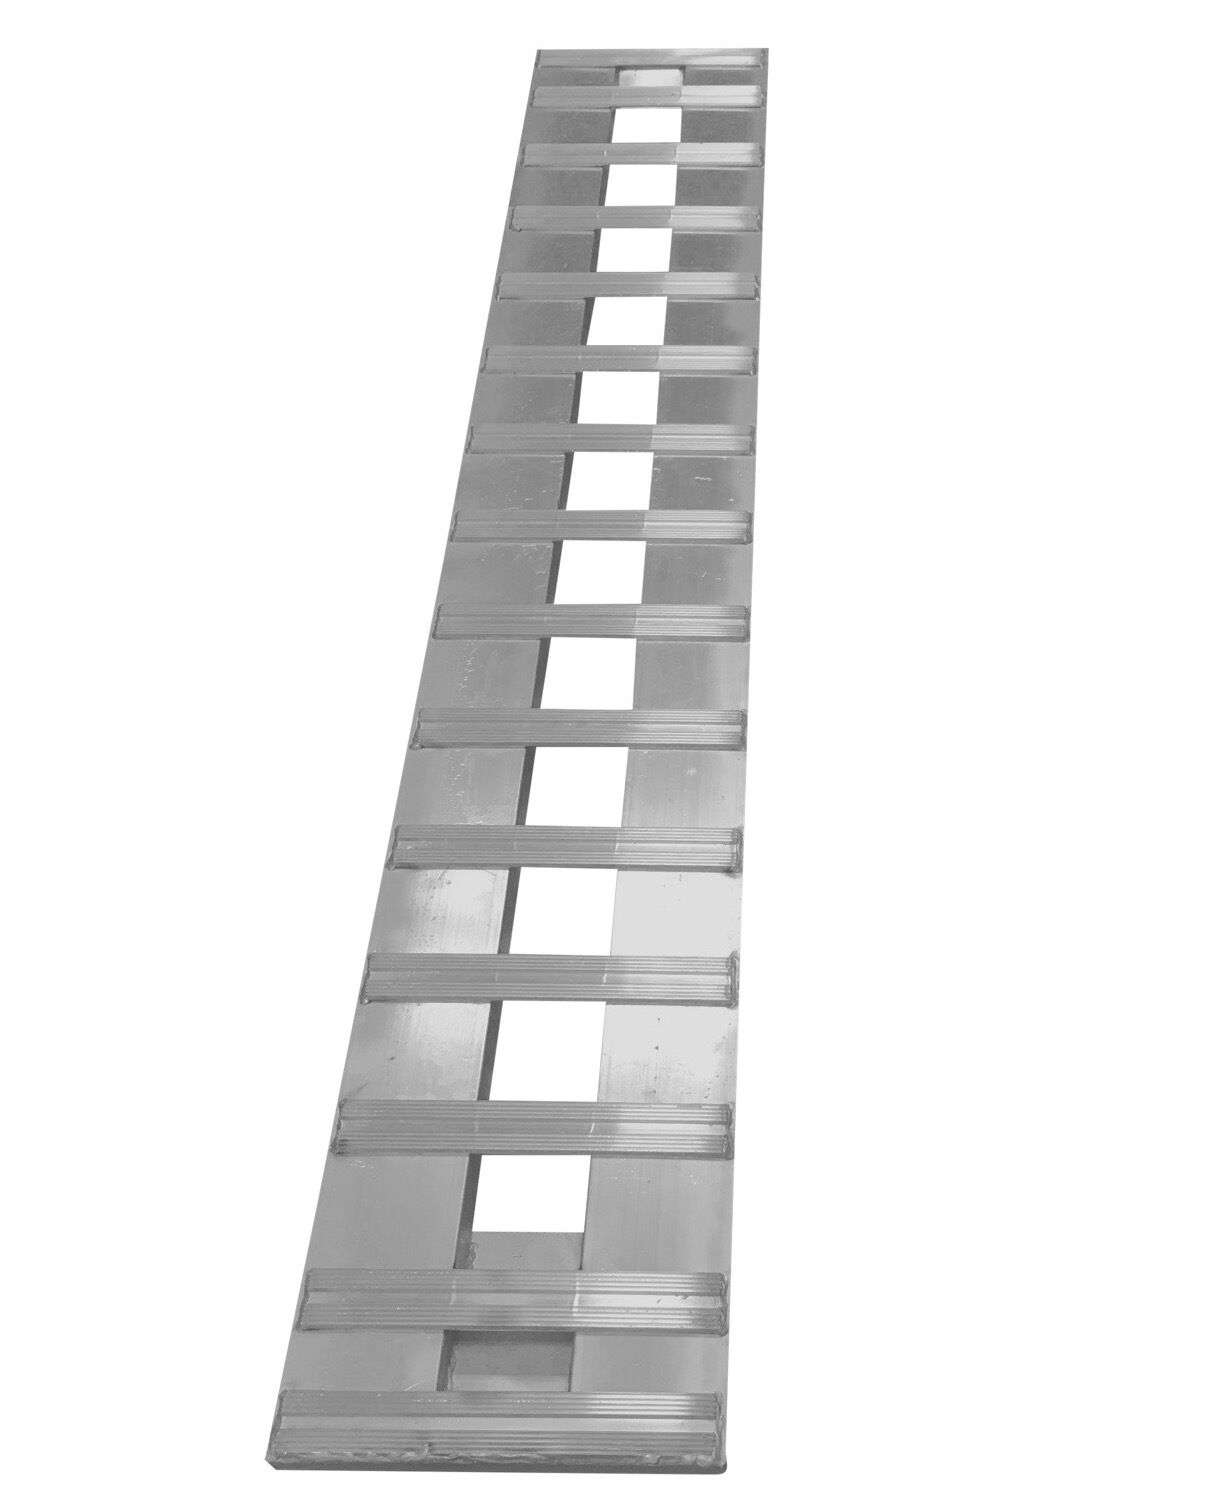 BestEquip Aluminum Ramps 10FT x 17.25 Inch ATV Ramps 800LBS Capacity Trucks Ramps Foldable Trailer Ramps with Attachment Hook and Serrated Rungs for Car Motorcycle Loading Equipment 1 Ramp